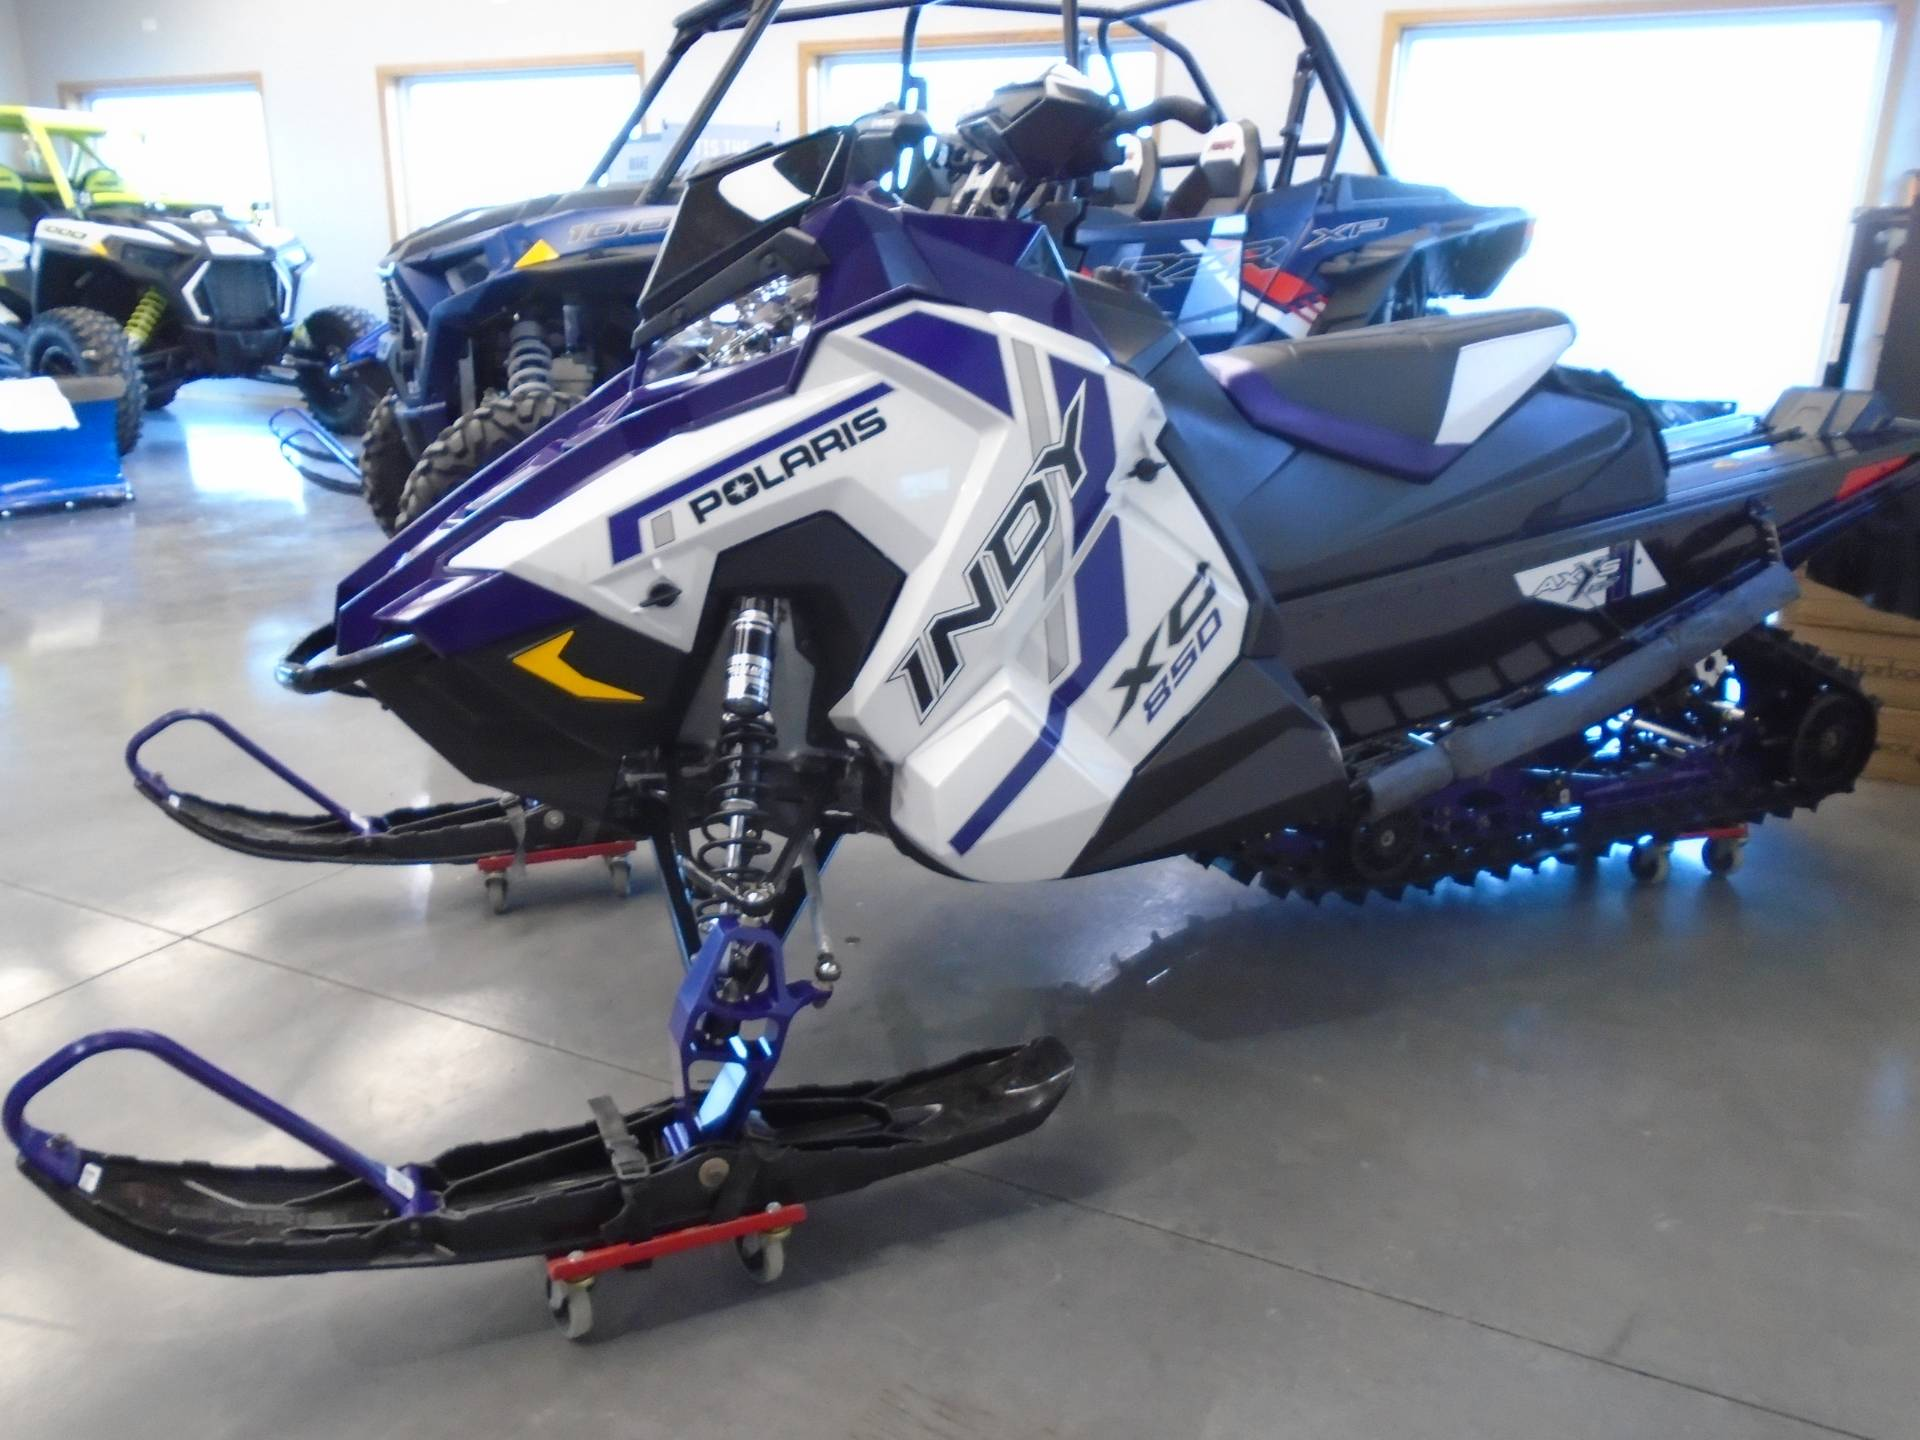 2021 Polaris 850 Indy XC 137 Factory Choice in Lake Mills, Iowa - Photo 1